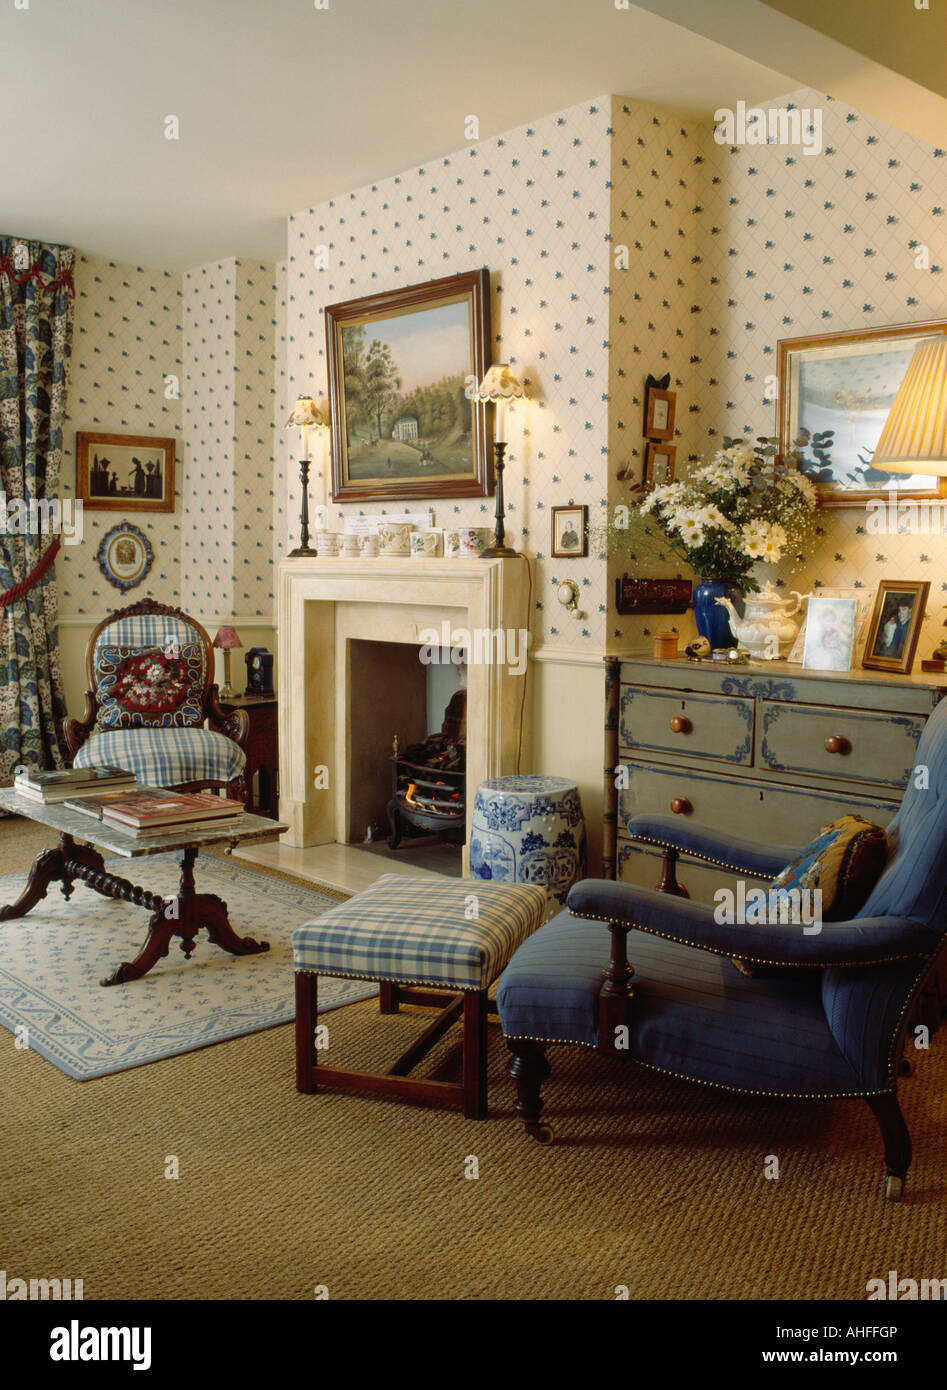 Blue Armchair And Checked Footstool In Living Room With Fireplace And  Spotted Wallpaper